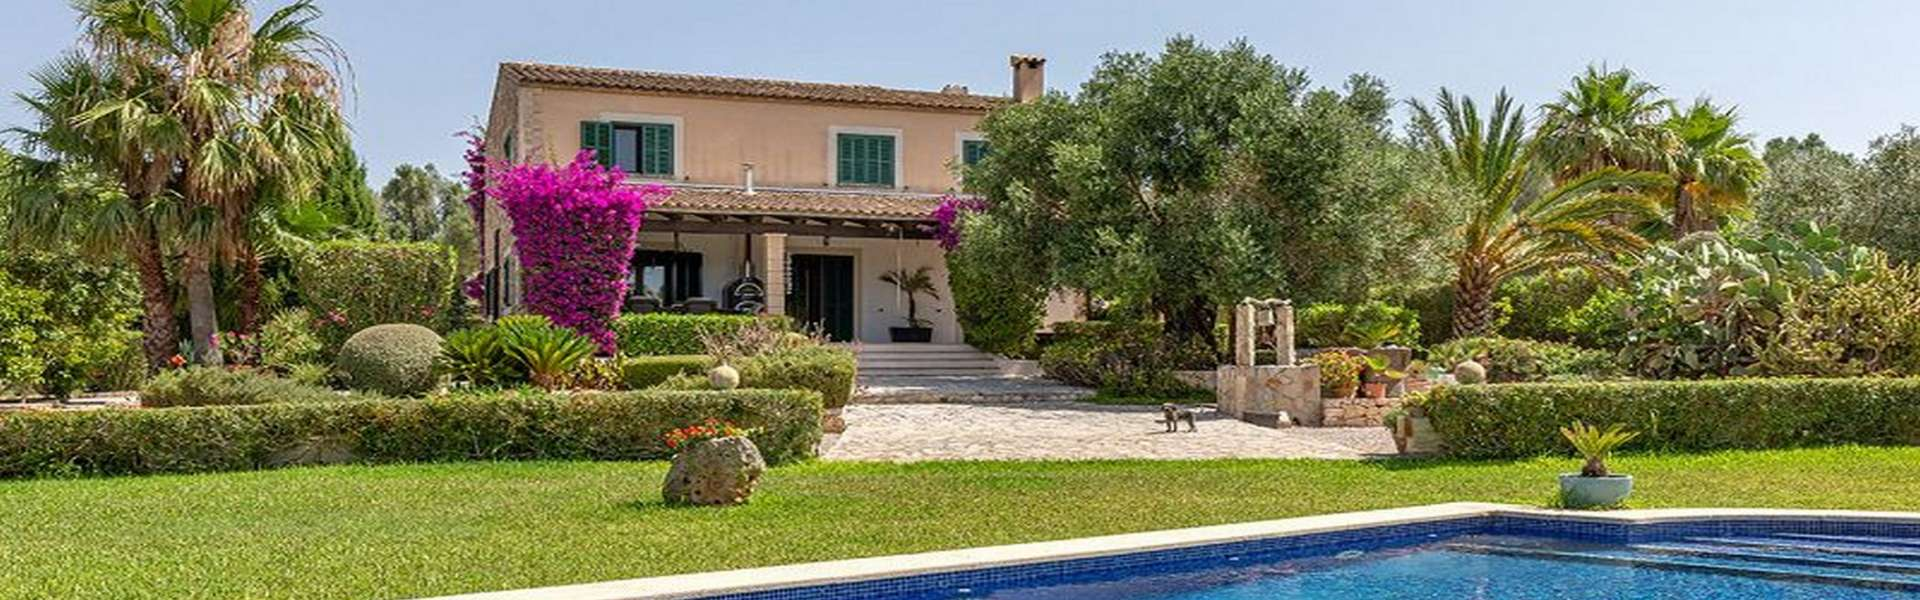 Fantastic finca with pool in Porreres